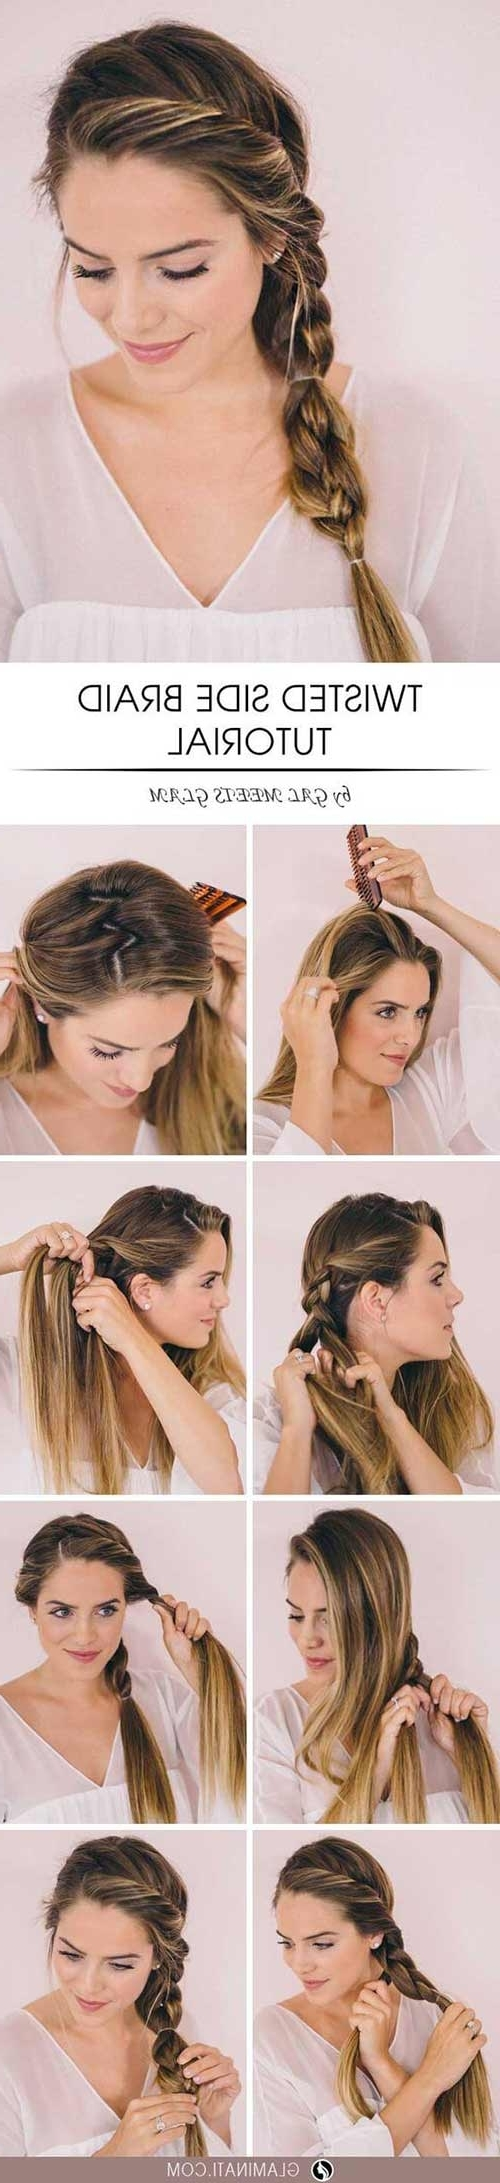 20 Awesome Hairstyles For Girls With Long Hair Inside Most Recently Released Braided Crown Ponytails For Round Faces (View 14 of 20)